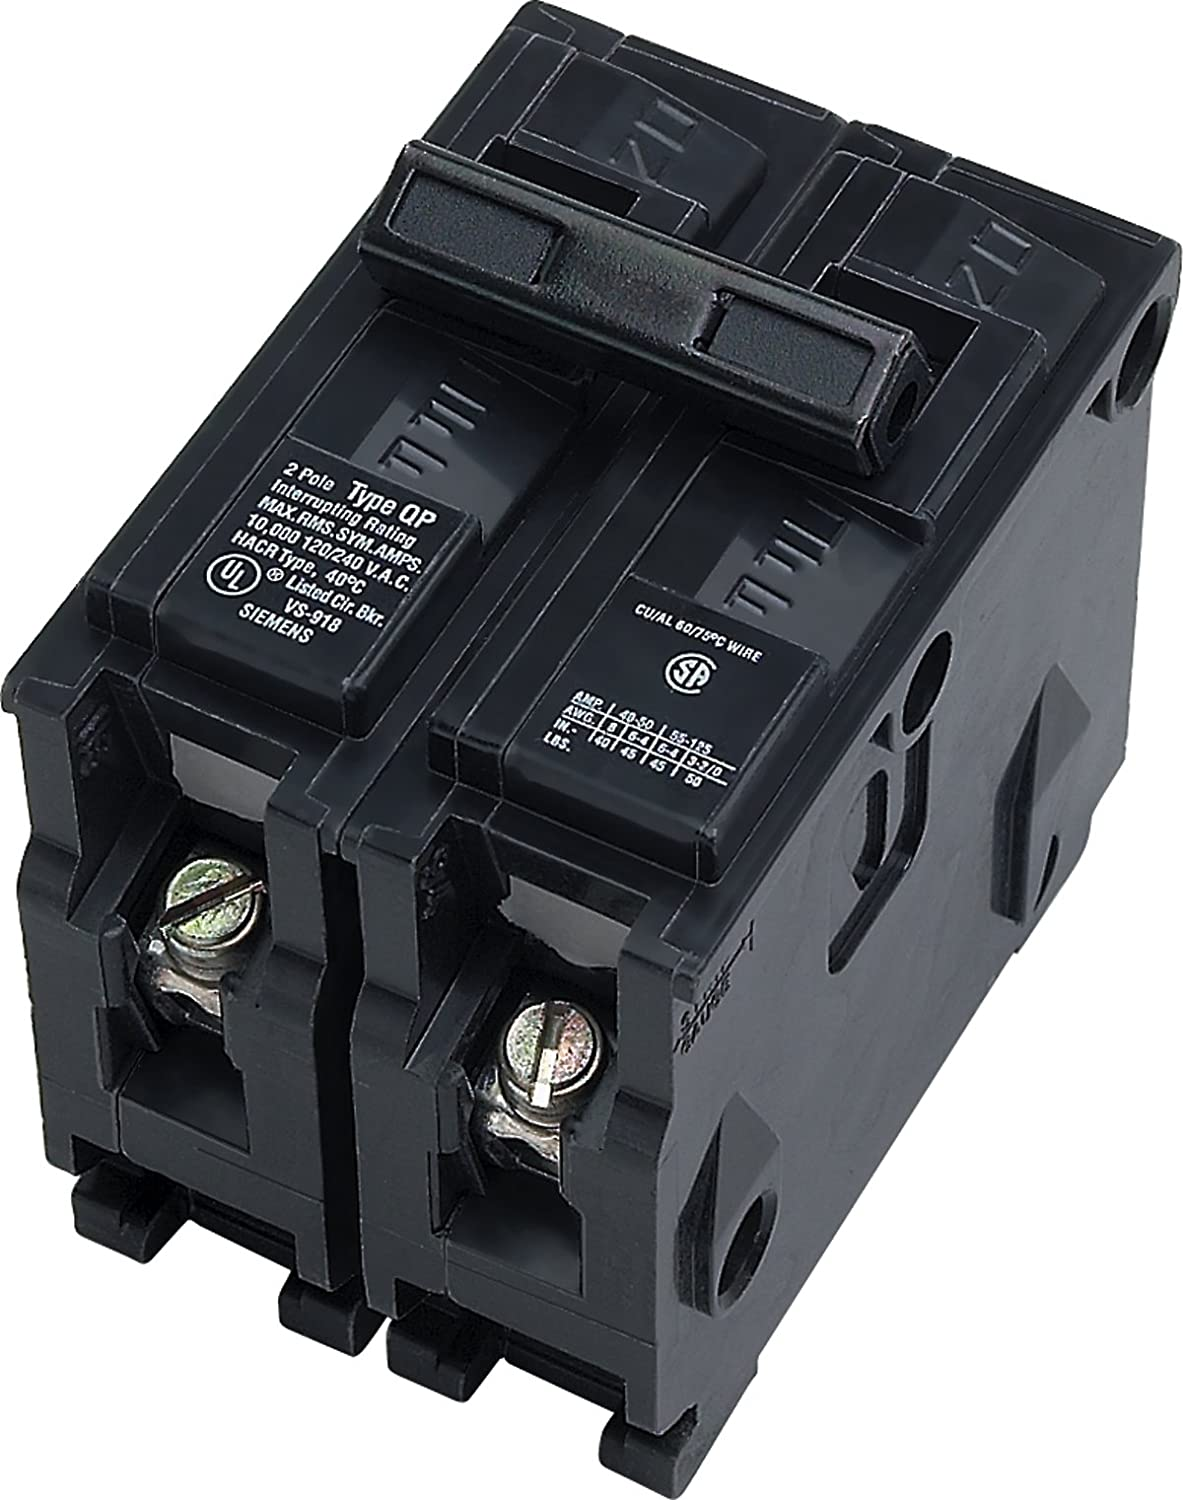 Q235 35-Amp Double Pole Type QP Circuit Breaker